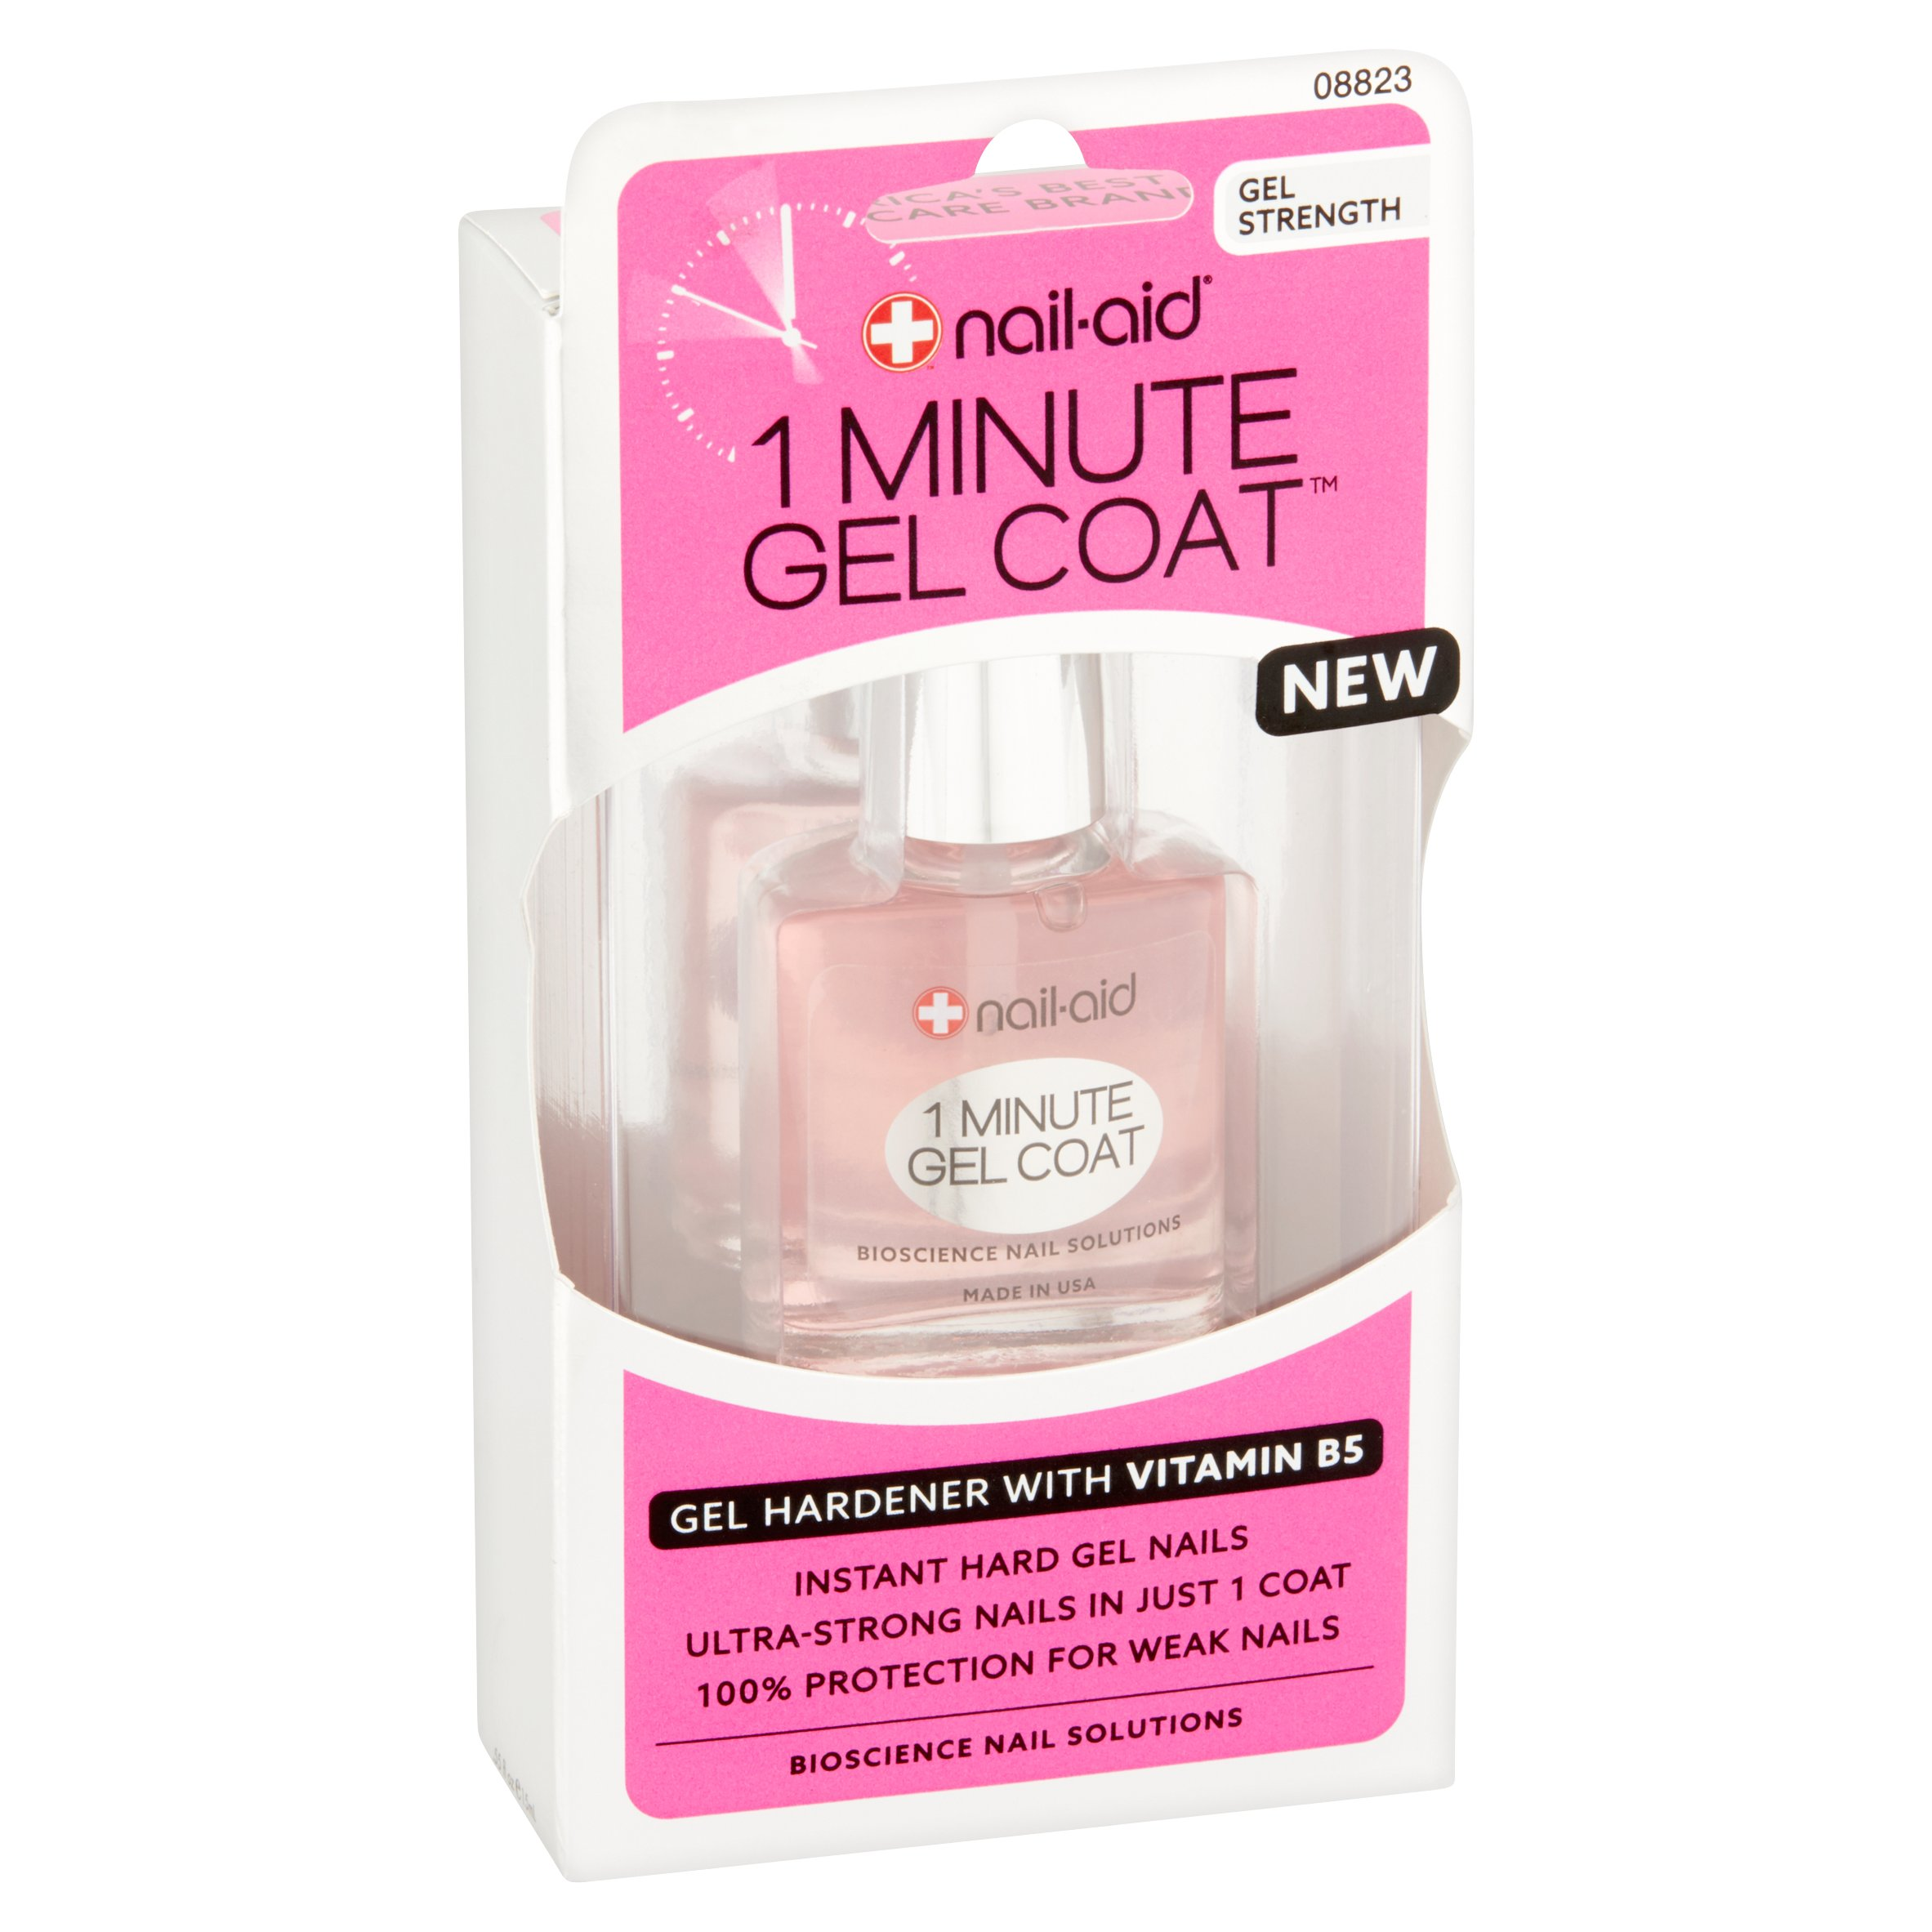 Nail-Aid 1 Minute Gel Coat, .55 fl oz - Walmart.com